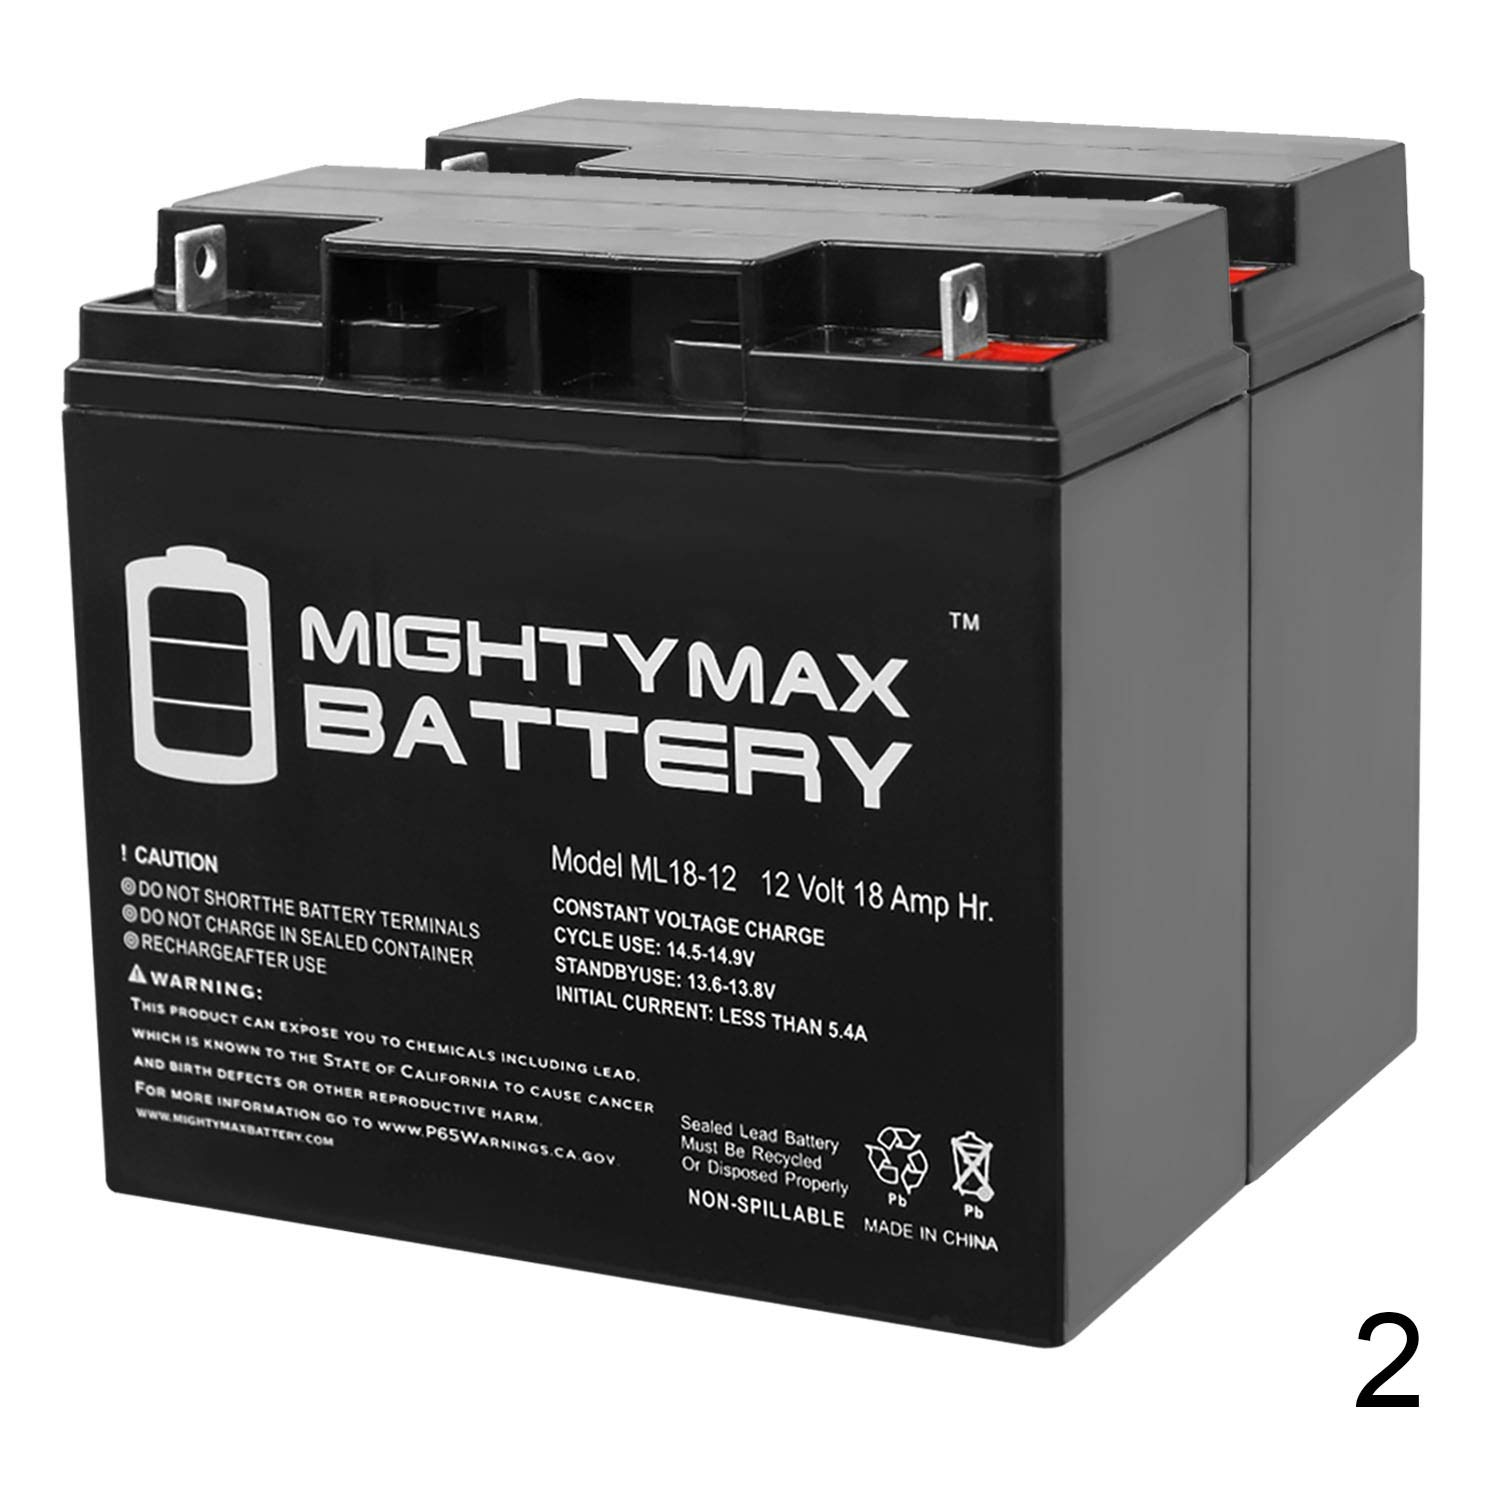 Mighty Max Battery 12V 18AH SLA Battery for Pride Mobility Go-Go Sport S74-2 Pack Brand Product by Mighty Max Battery